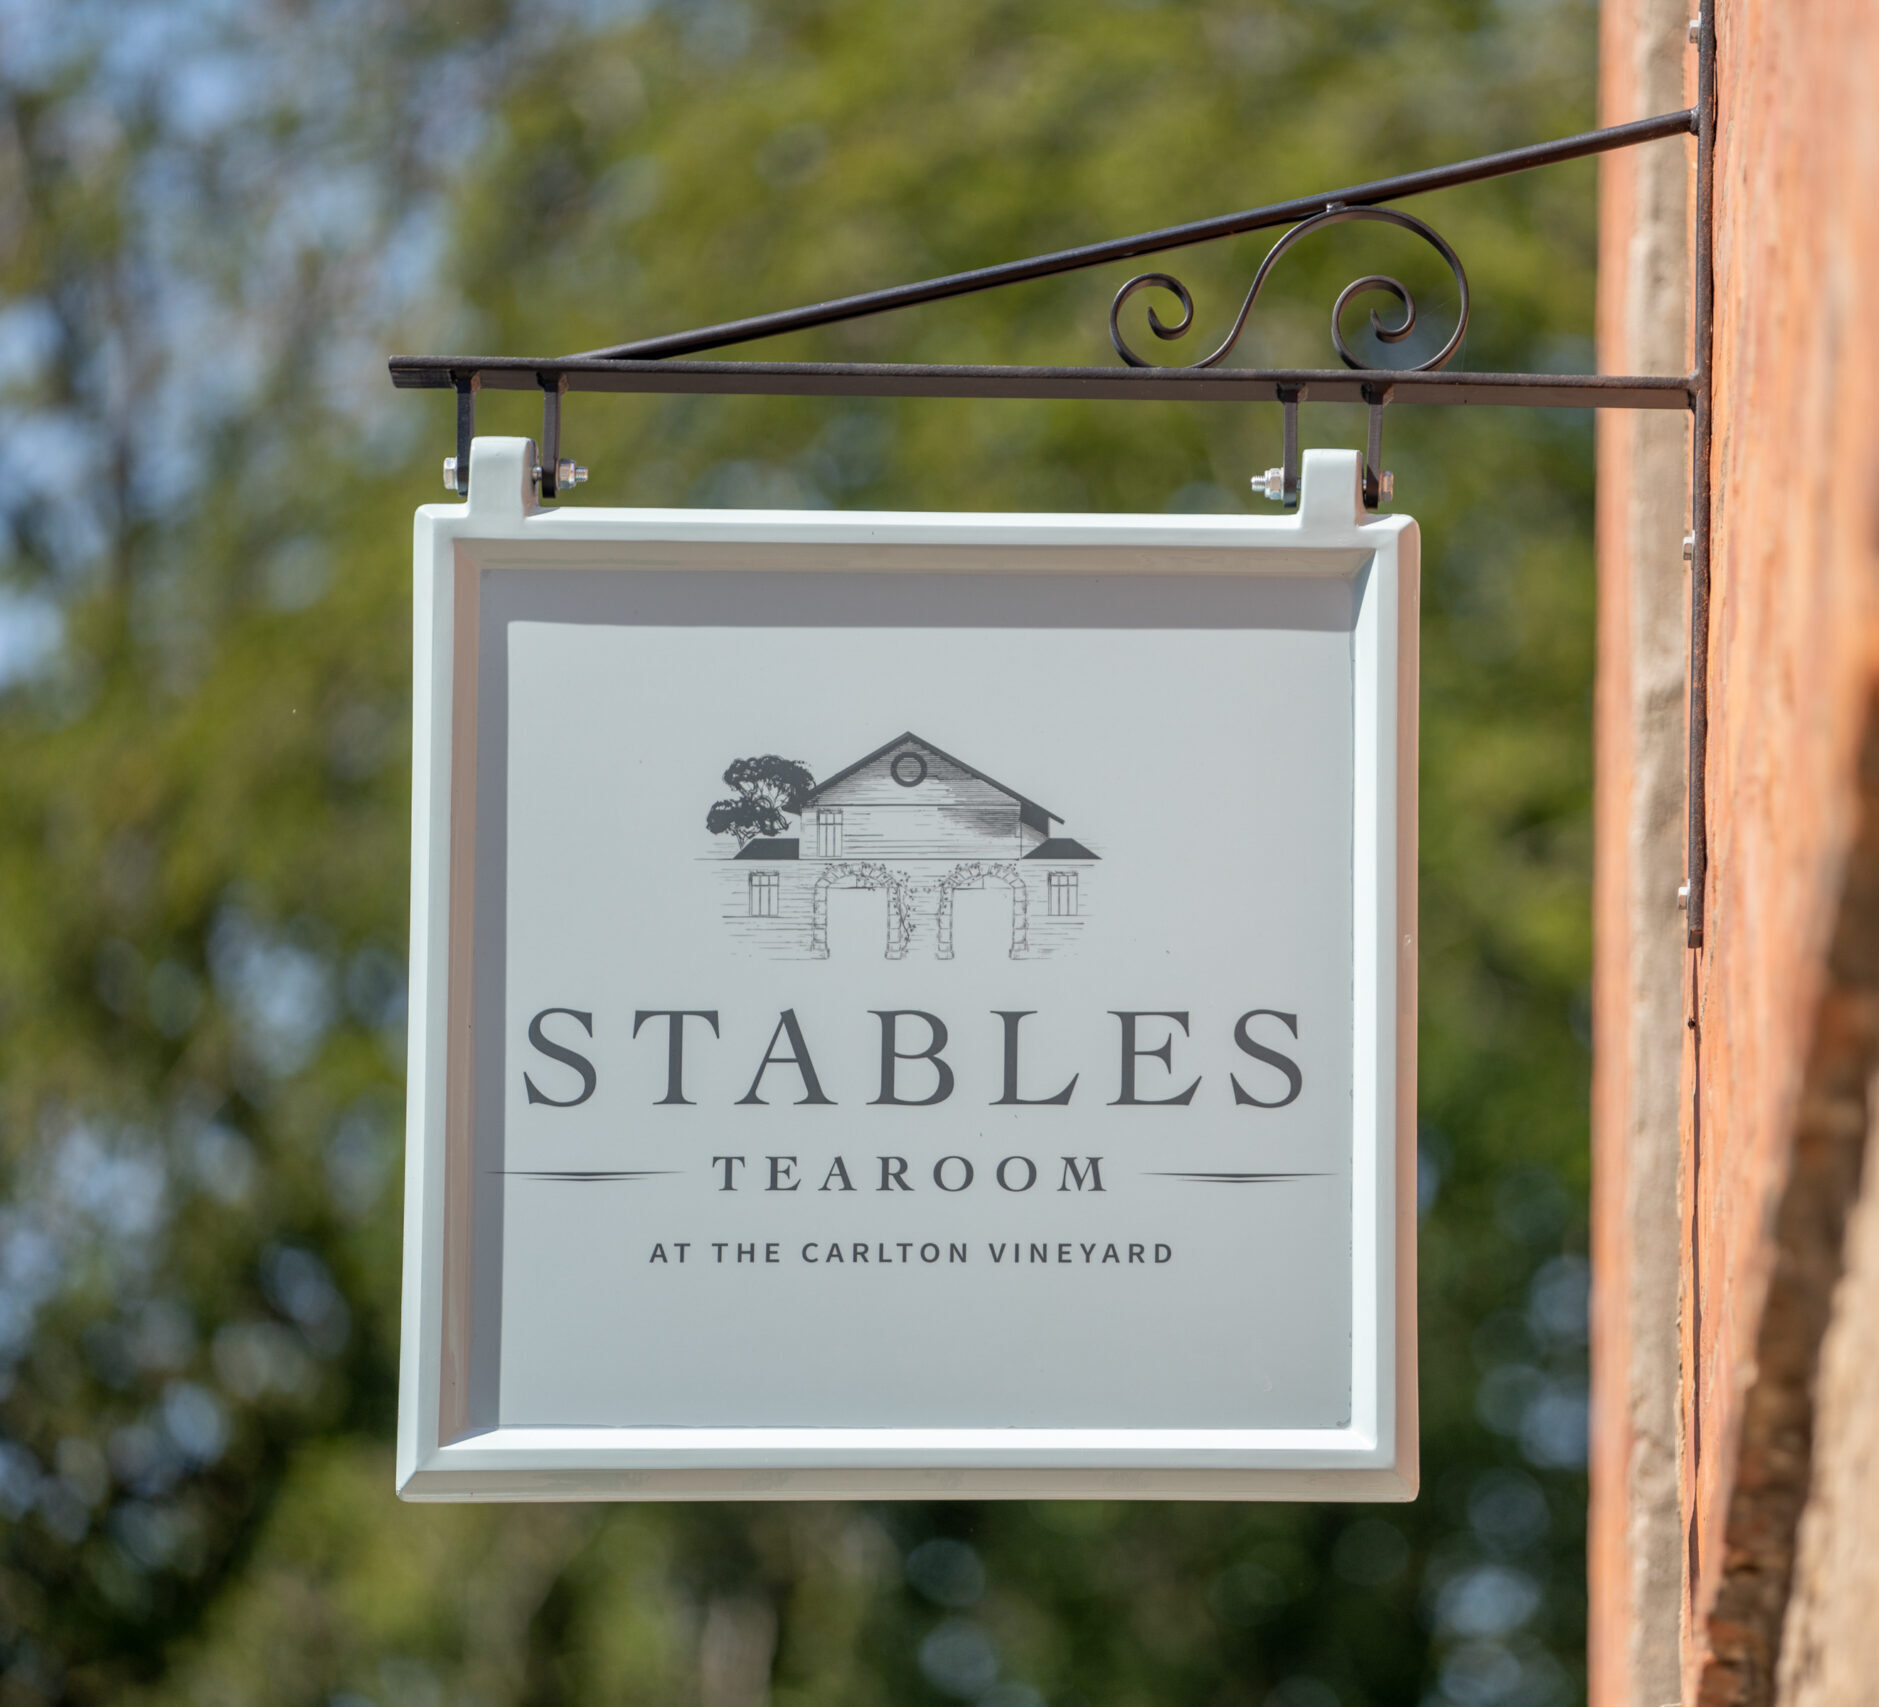 Sign at the entrance of The Stables Tearoom at The Carlton Vineyard